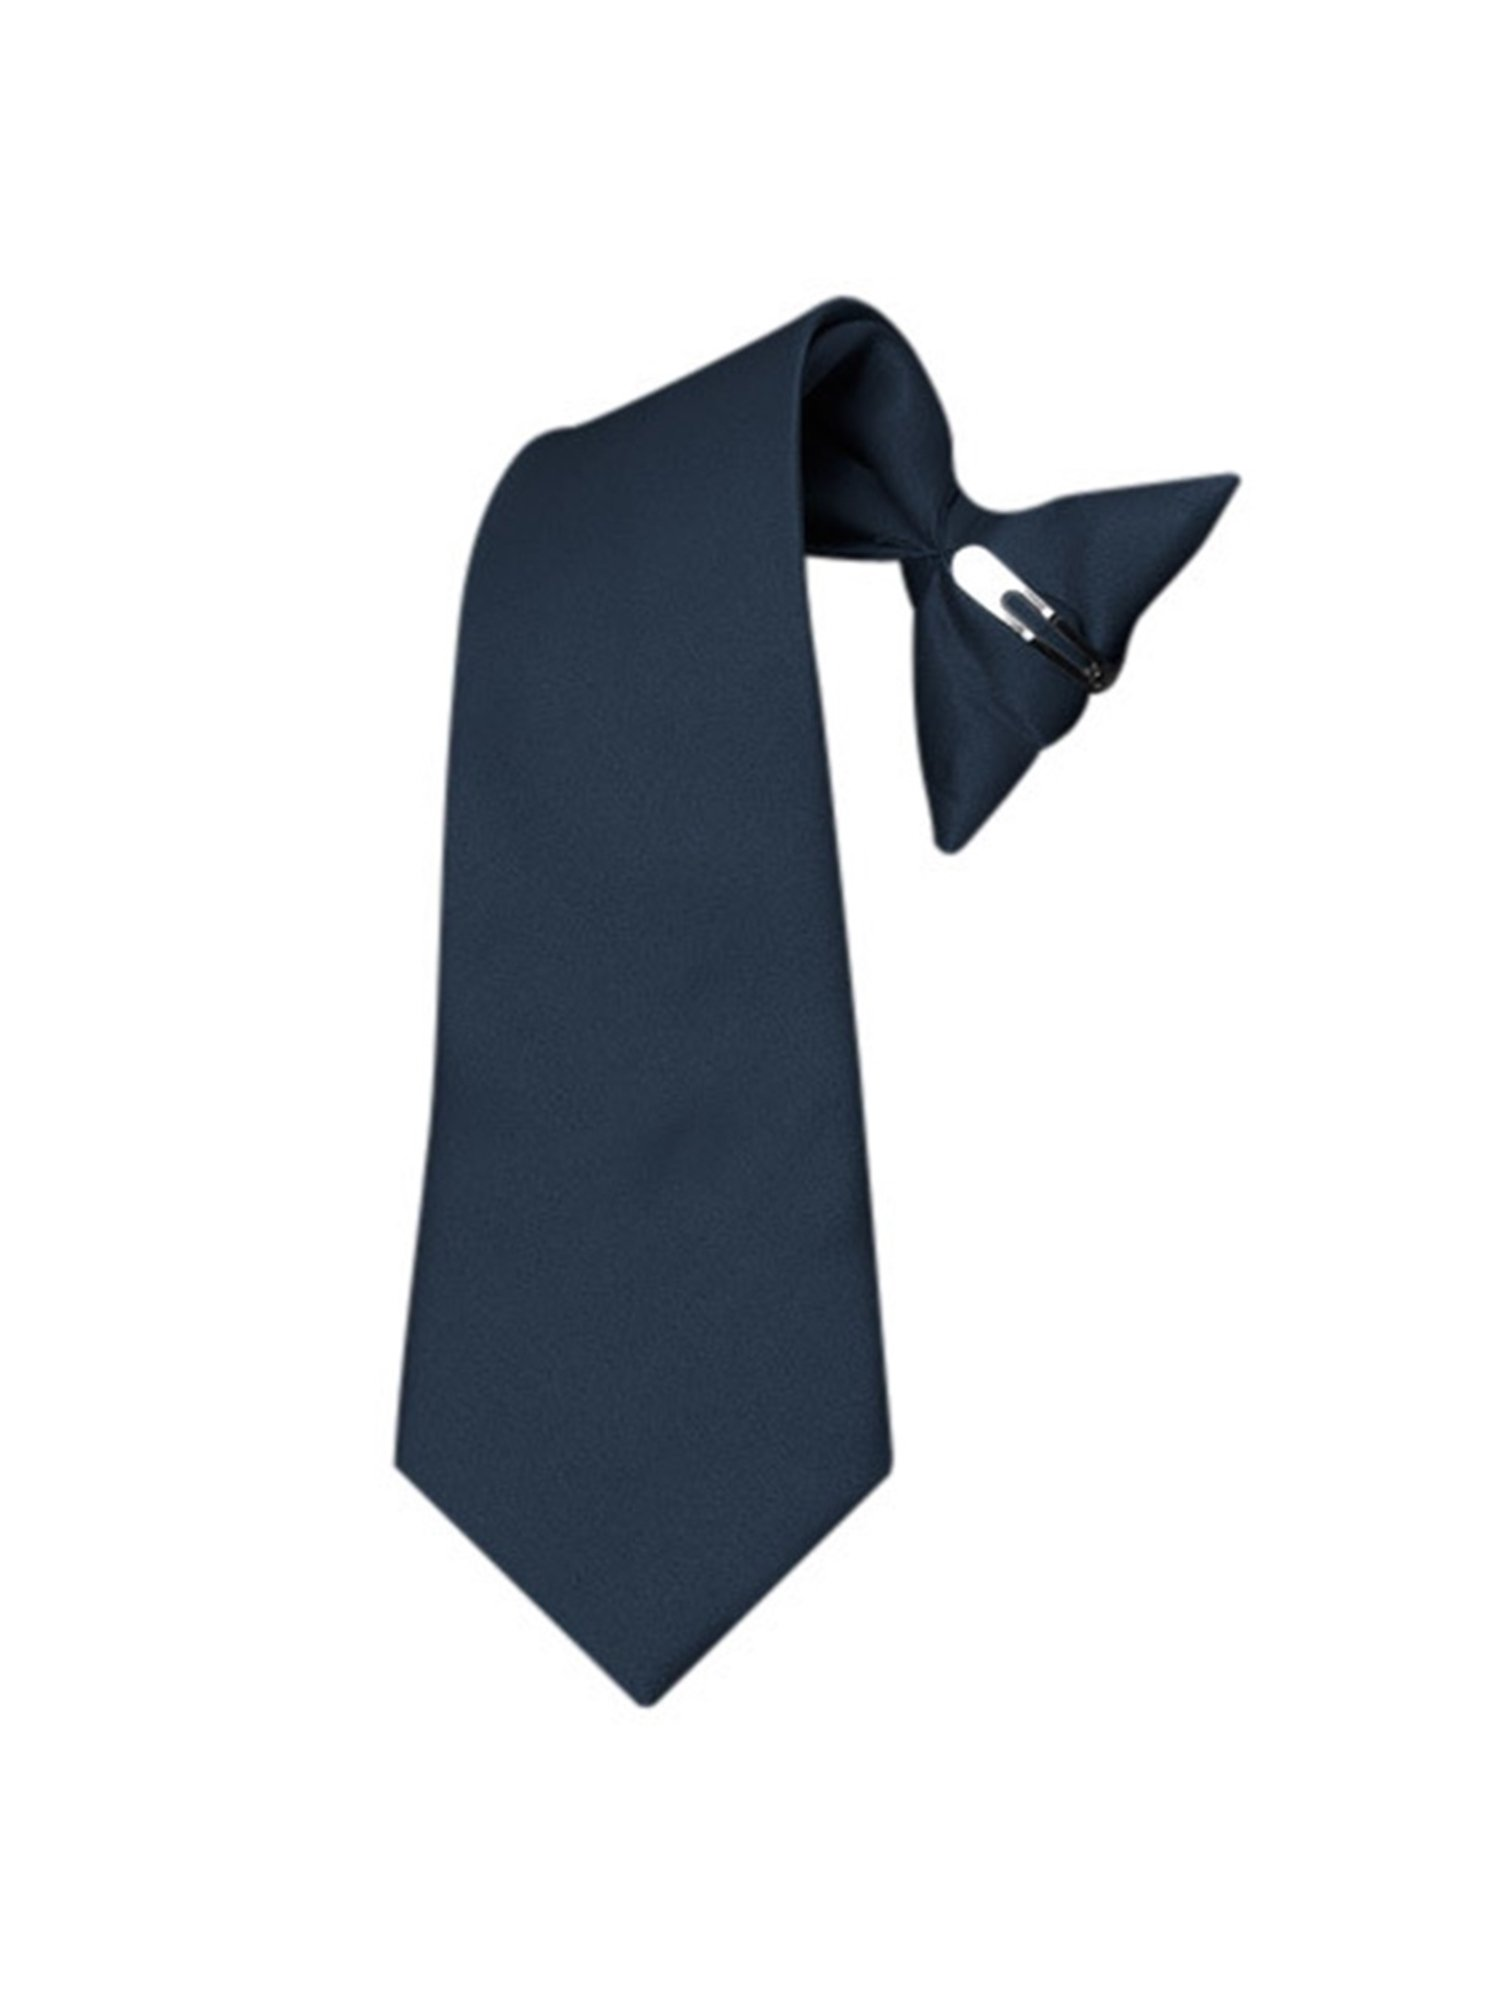 Boy's Navy Solid Color Pre-tied Clip On Neck Tie